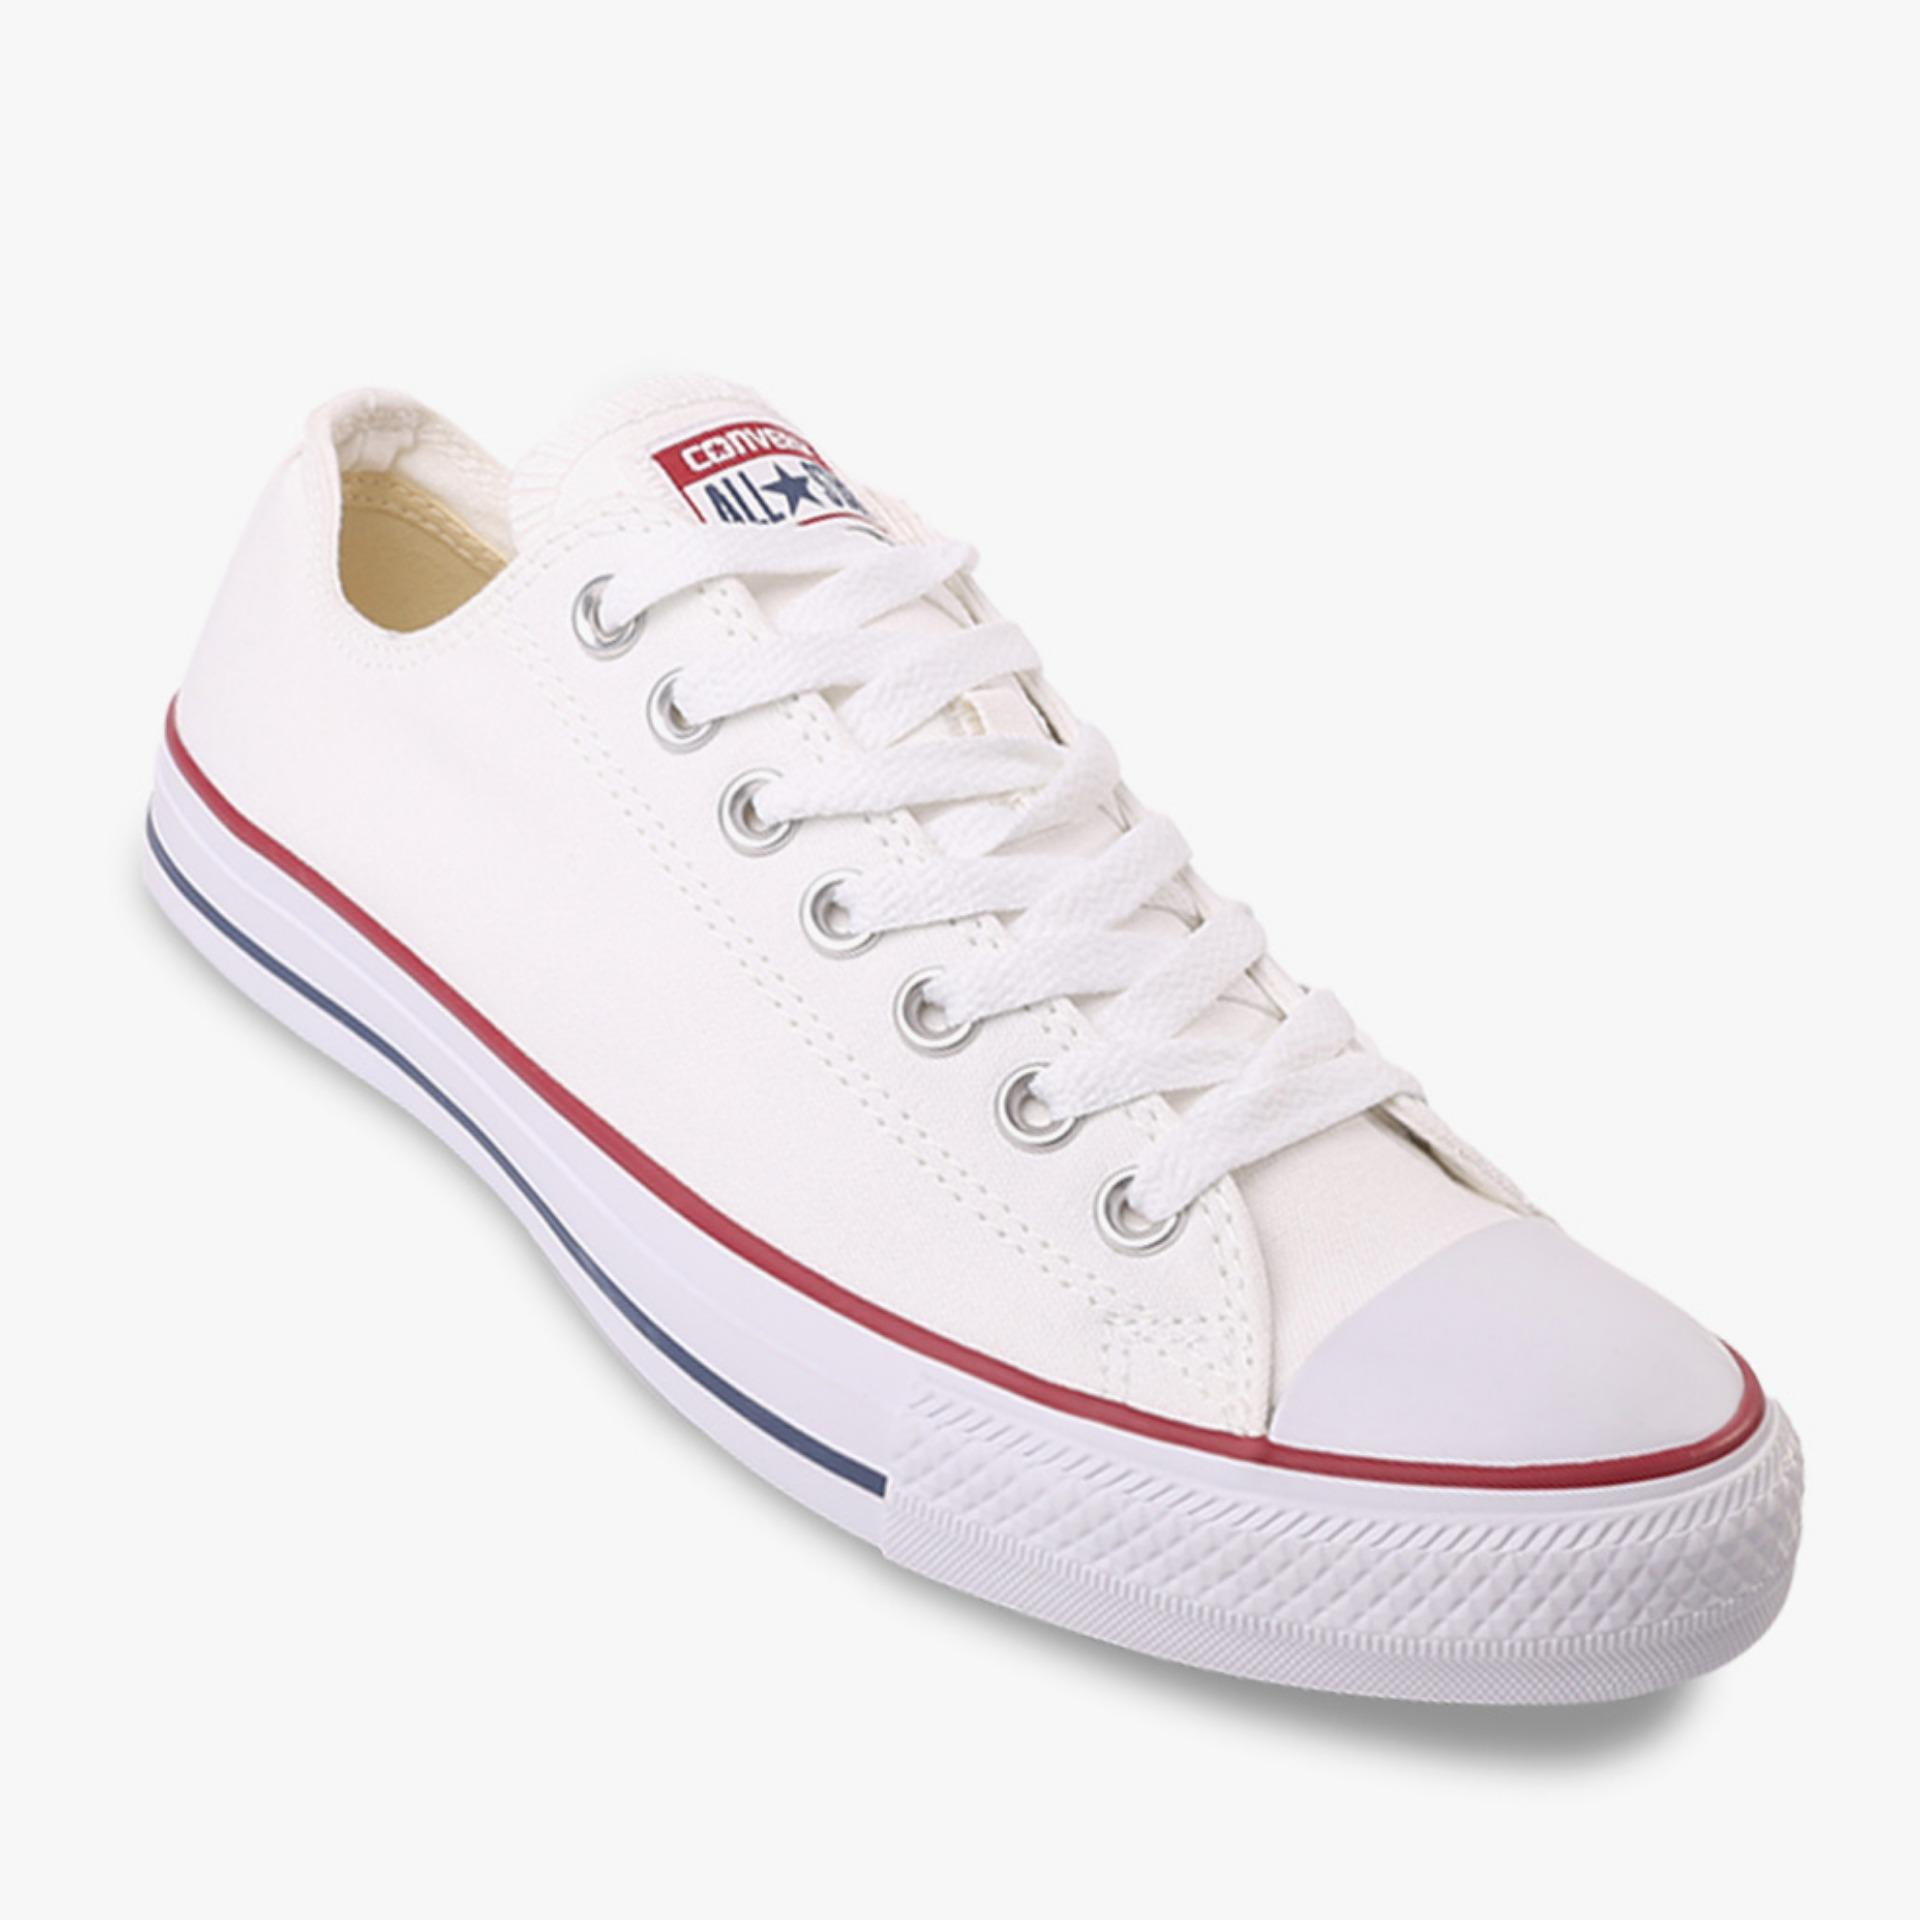 Toko Converse Chuck Taylor All Star Ox Men S Sneakers Putih Online